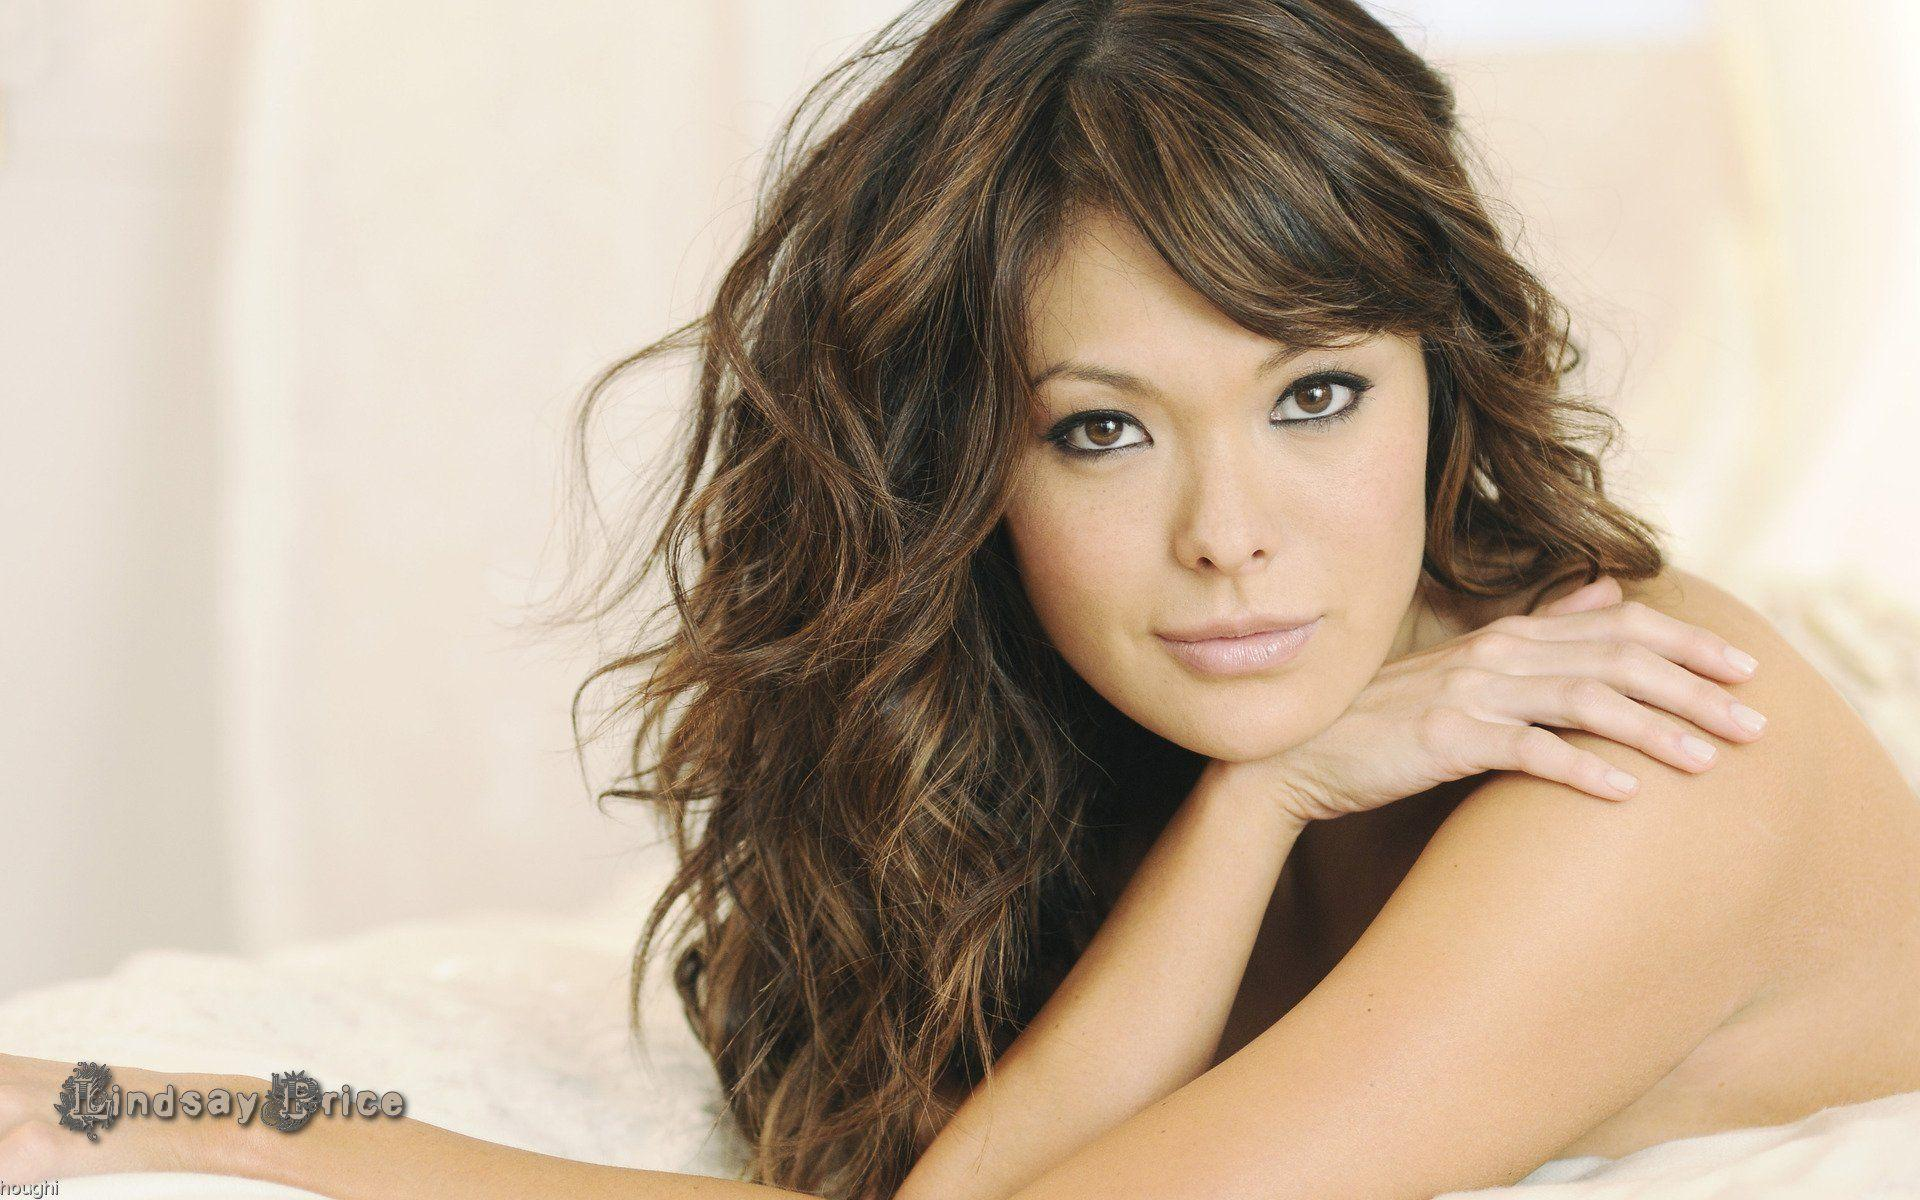 Hair Style Prices: Lindsay Price Wallpapers